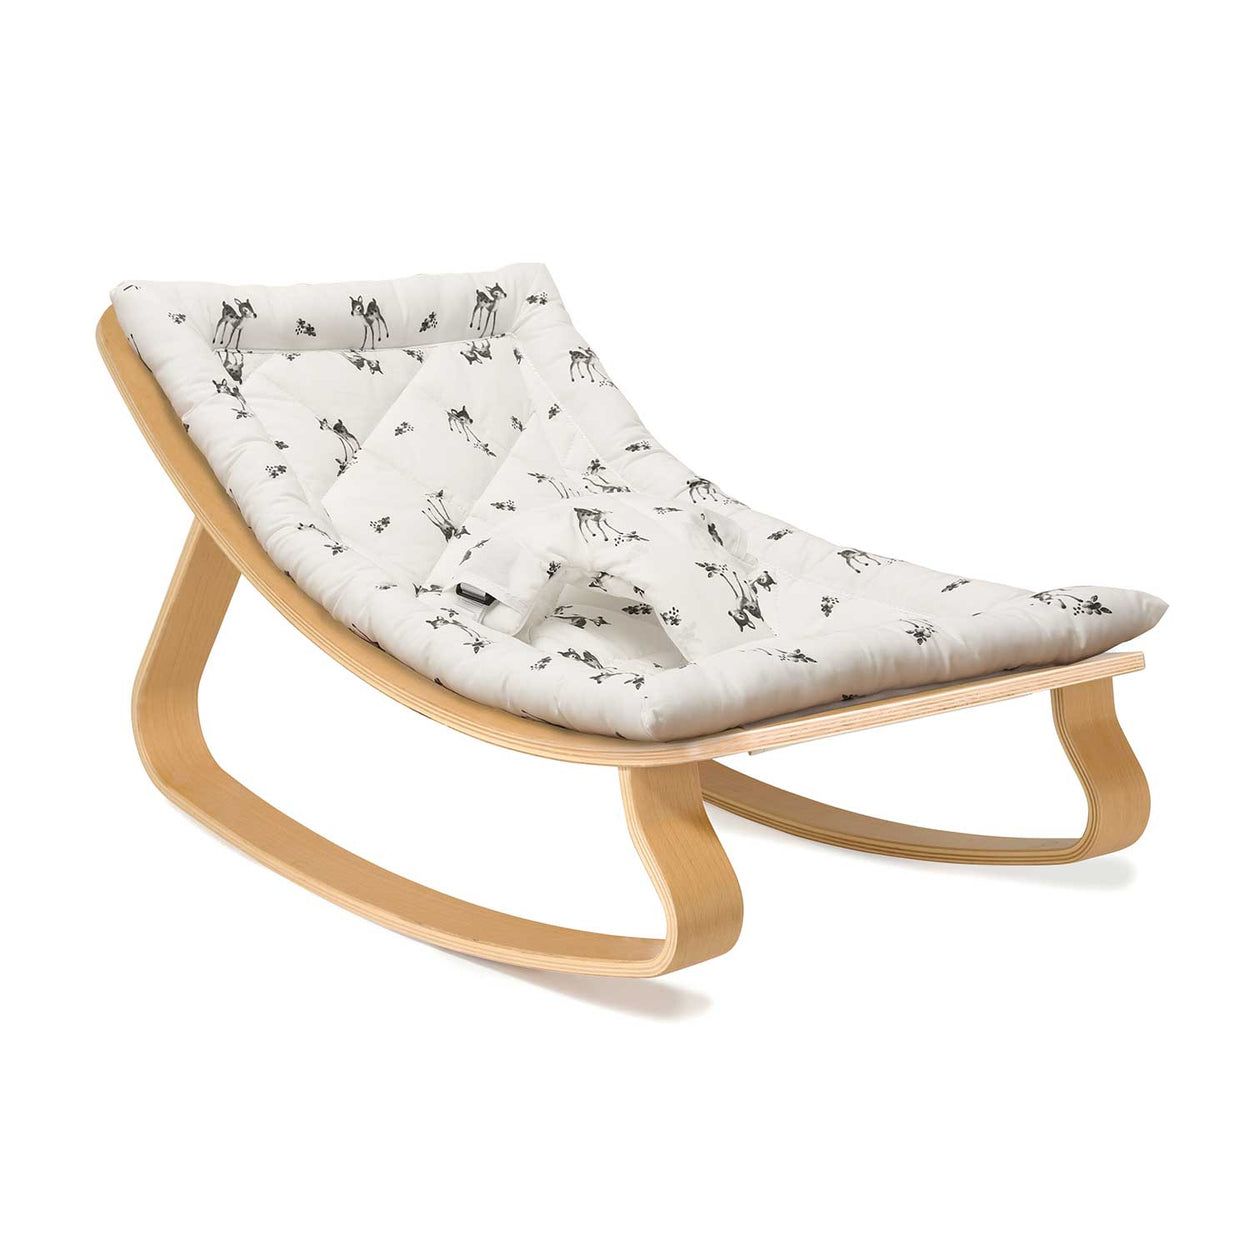 Charlie Crane Levo Baby Rocker in Beech with Fawn Cushion